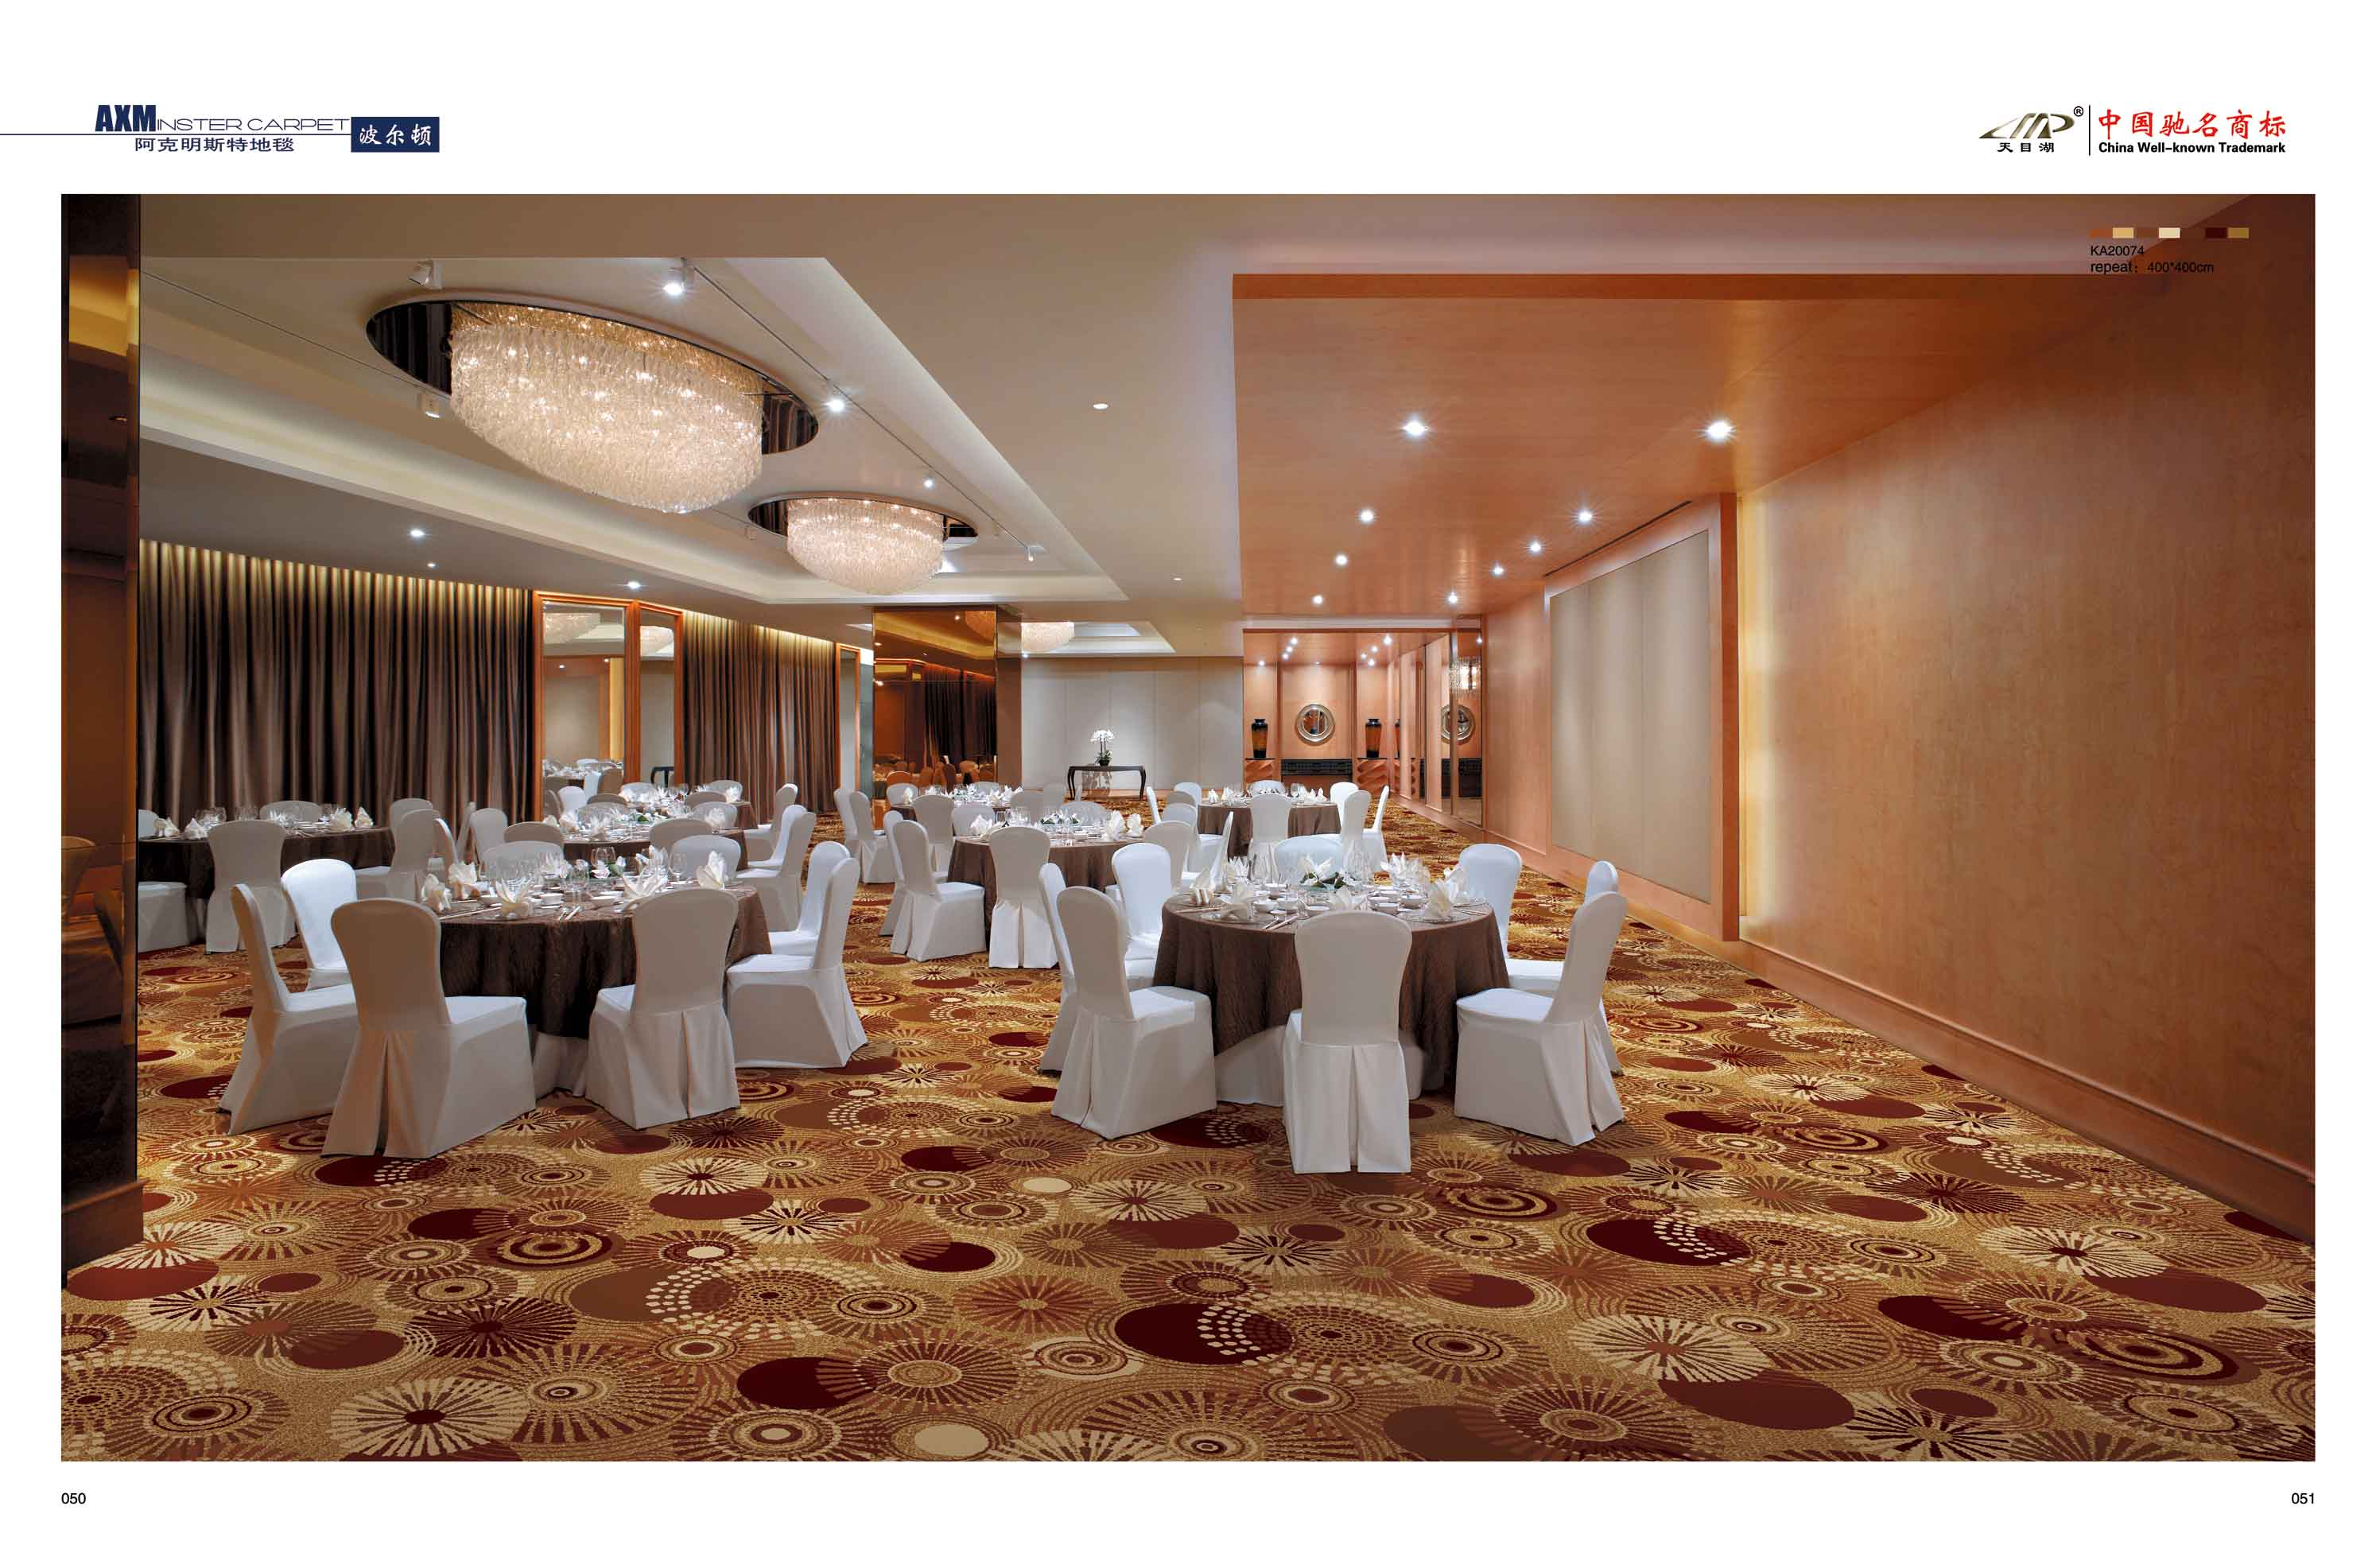 Luxury Wall to Wall Polypropylene Wilton Carpet for Hotel Corridor,Lobby,Reataurant Room